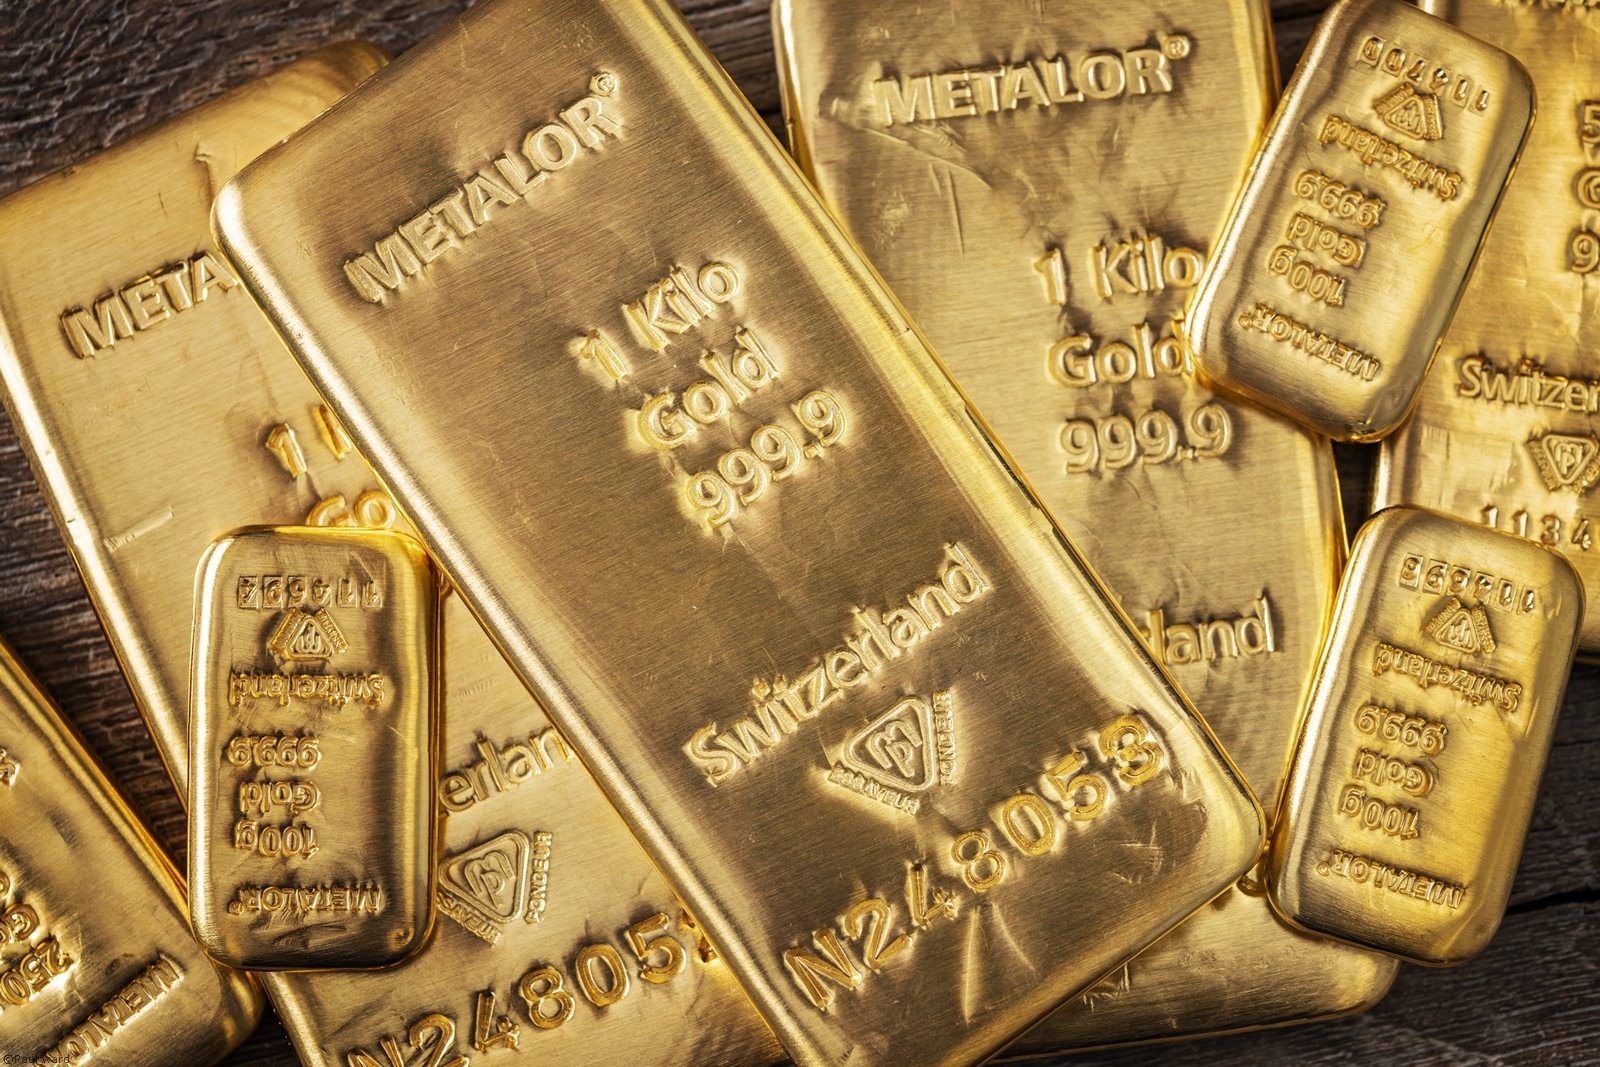 Gold bars product photography by Birmingham Photographer Paul Ward. shot for Gold Bullion Dealers